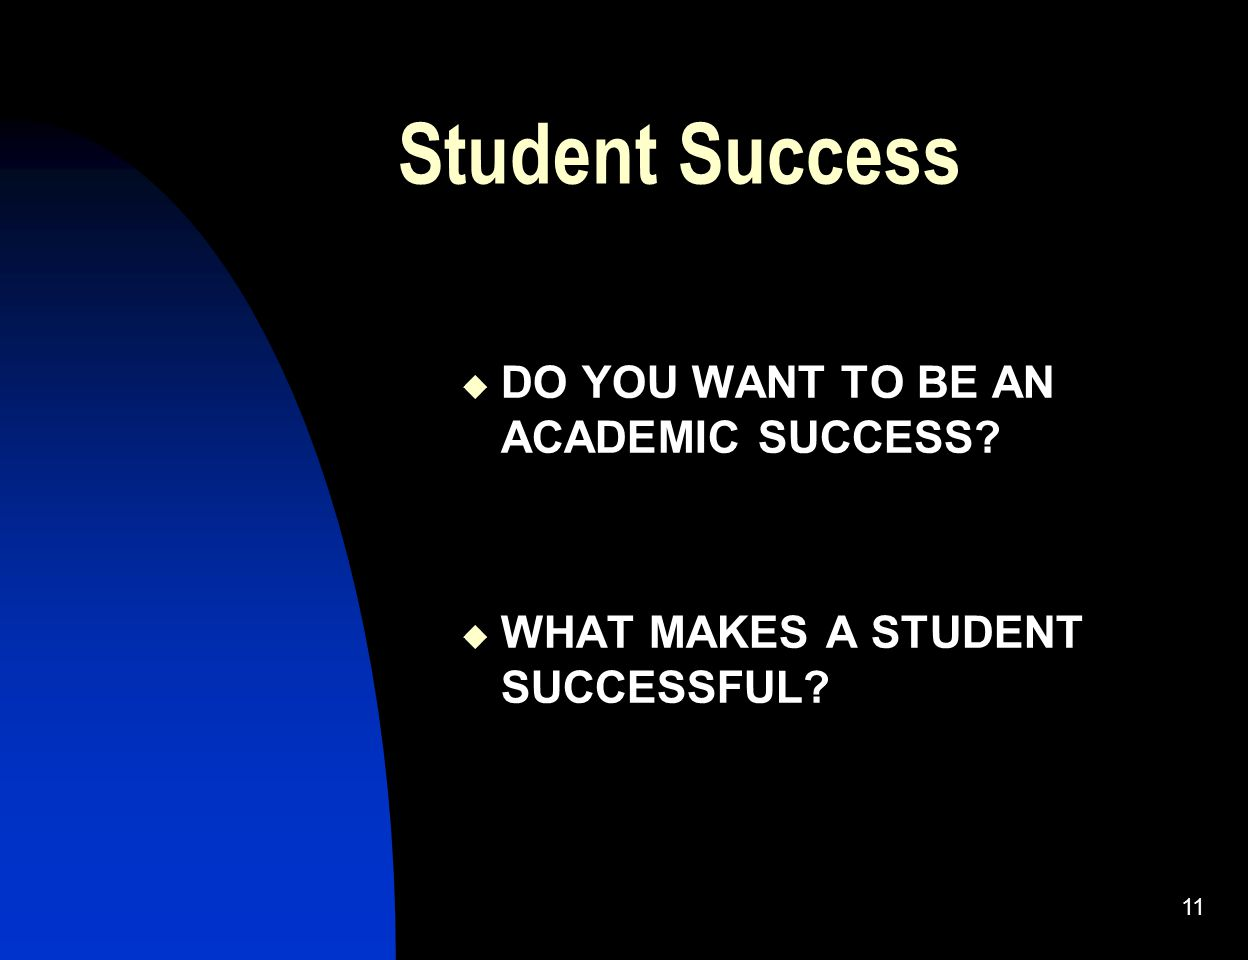 Student Success DO YOU WANT TO BE AN ACADEMIC SUCCESS